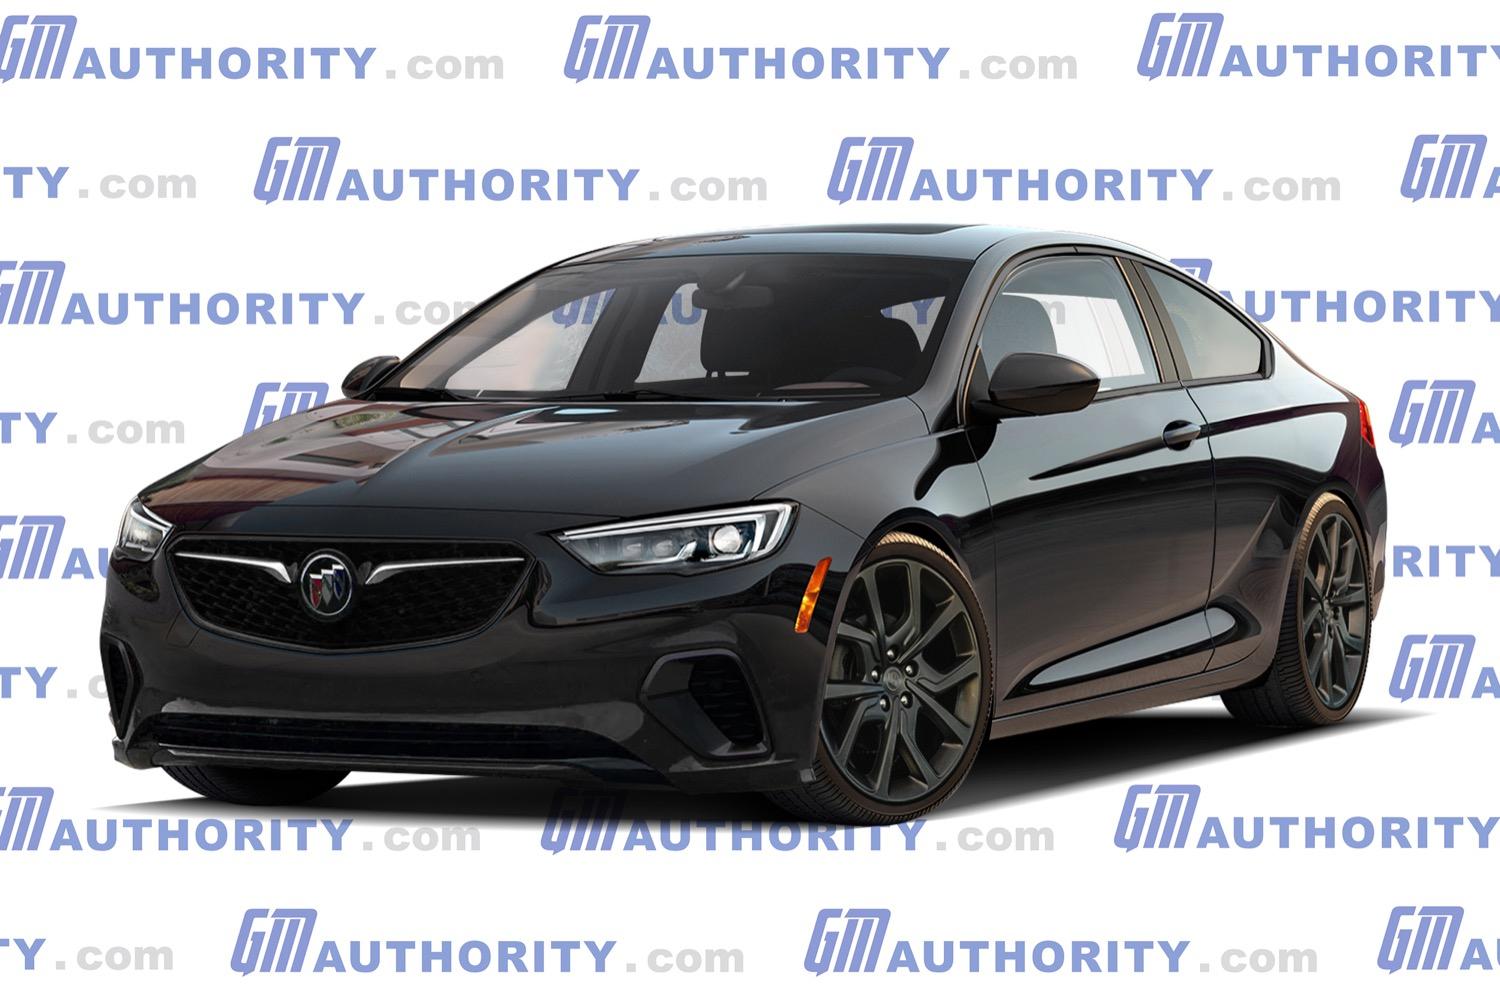 Modern Buick Regal Gnx Rendered | Gm Authority New 2022 Buick Regal Gs Review, Specs, Release Date